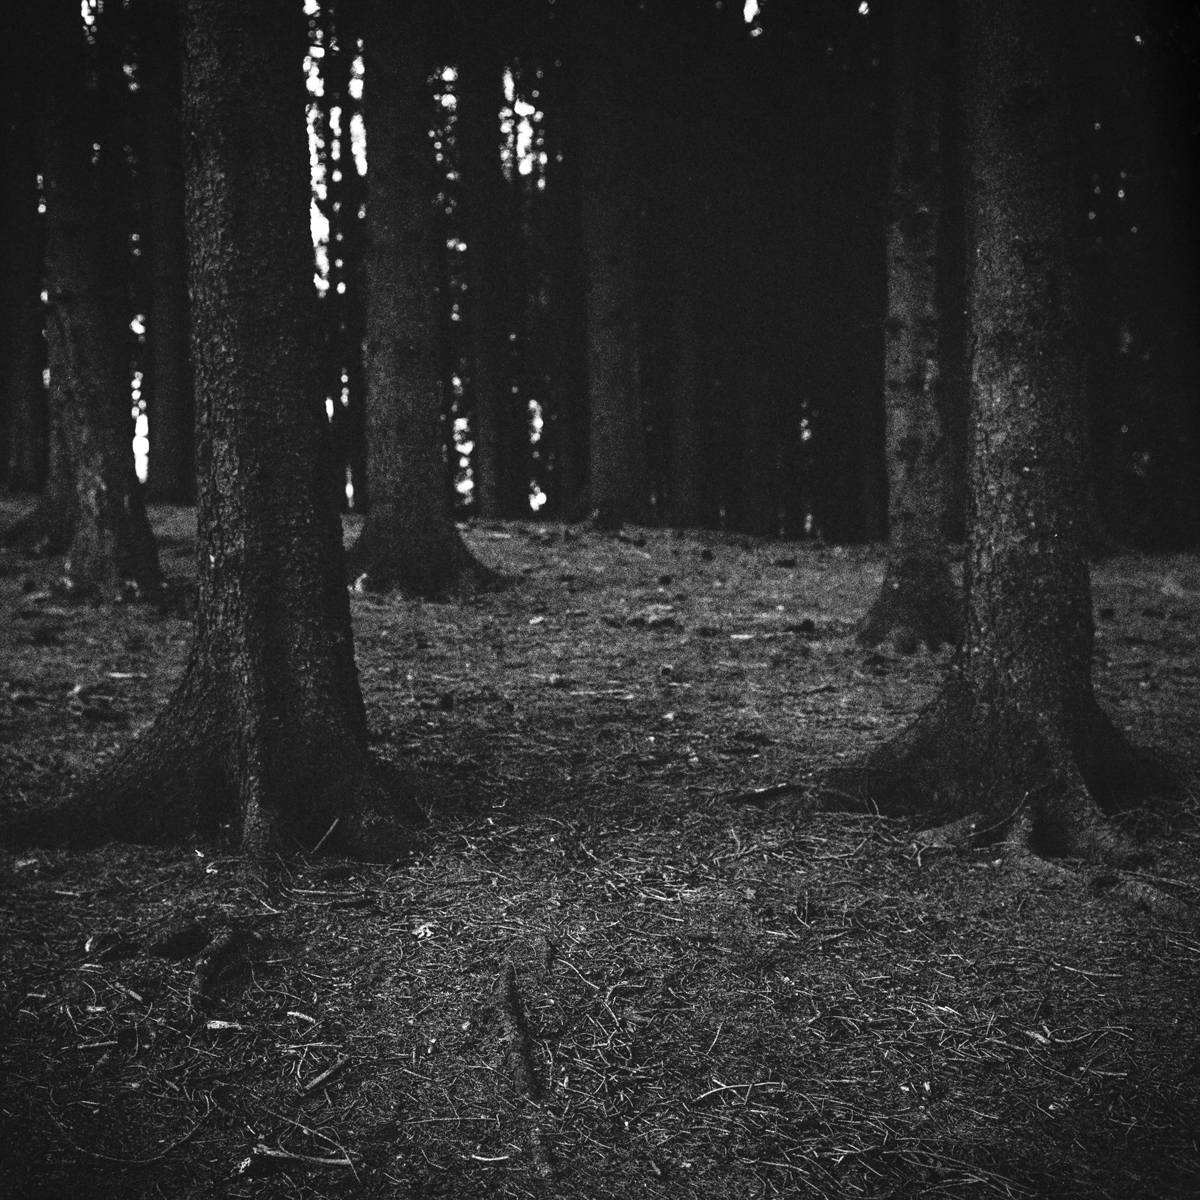 Christopher_Schmidtke_Into_the_woods_3